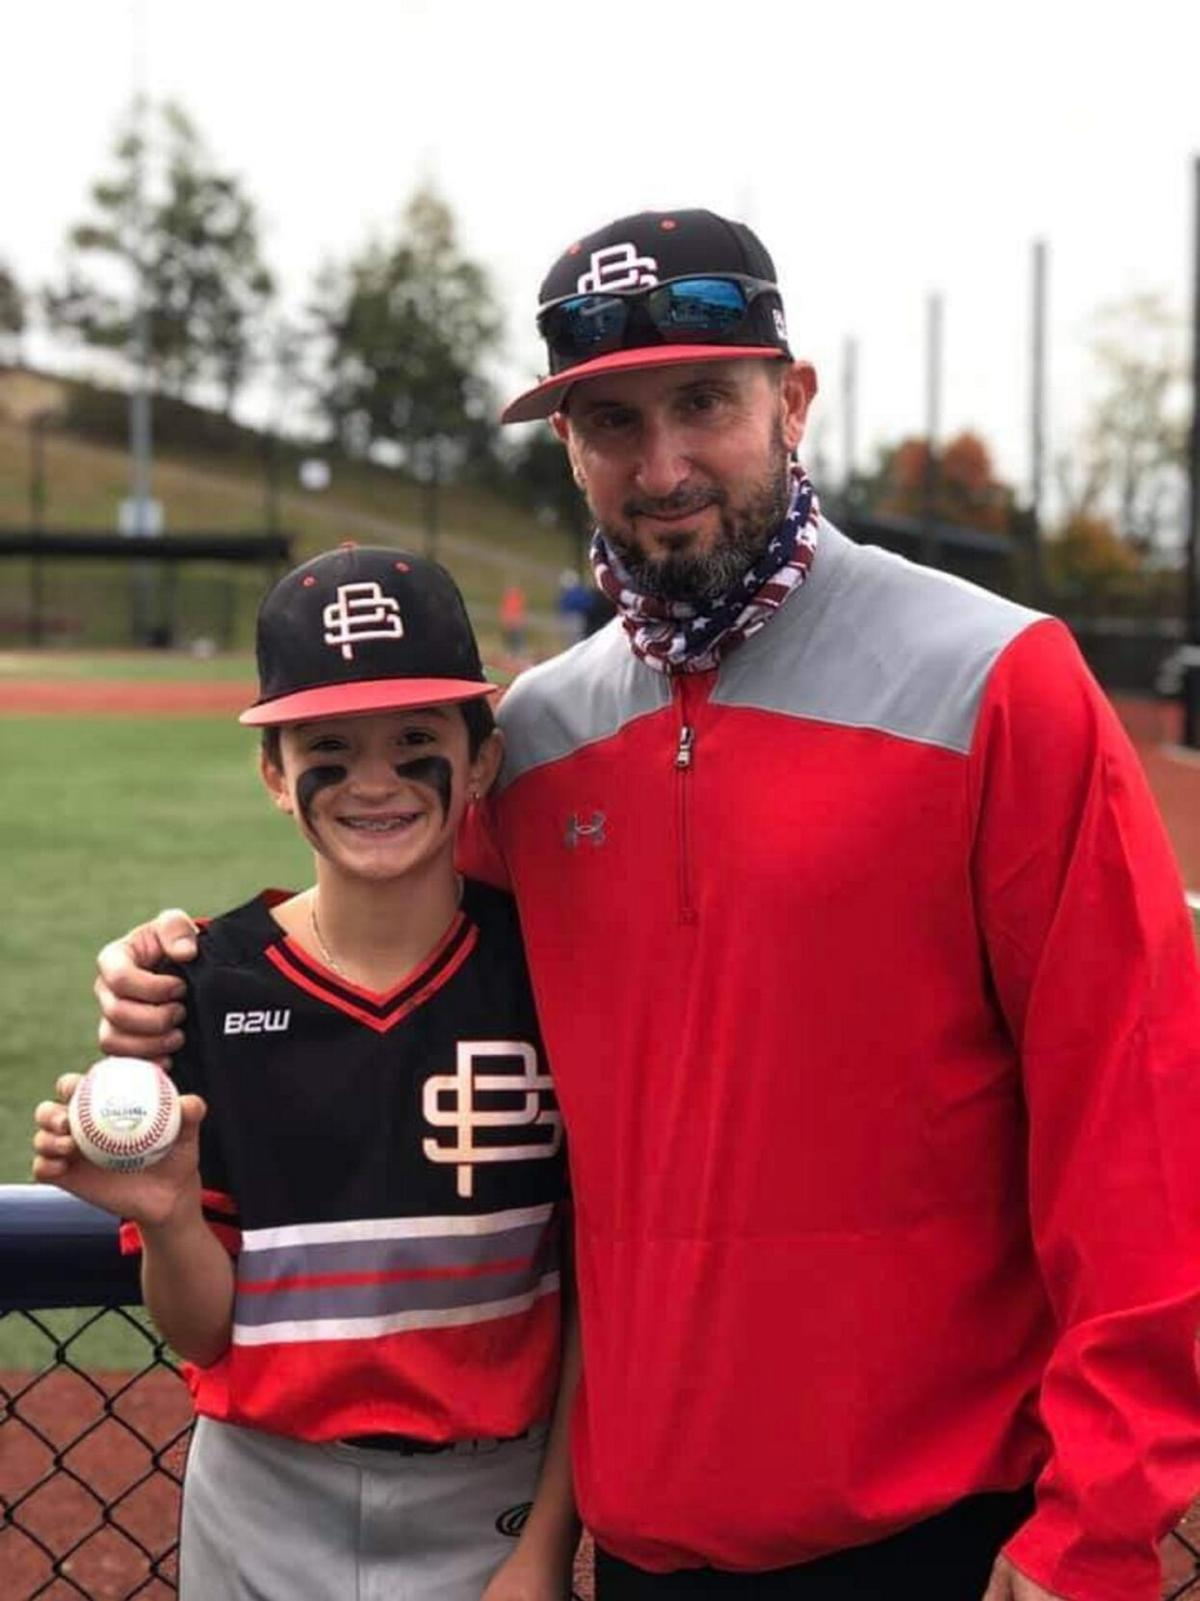 FALL BASEBALL: Outlaws 8U win two; Super belts first HR